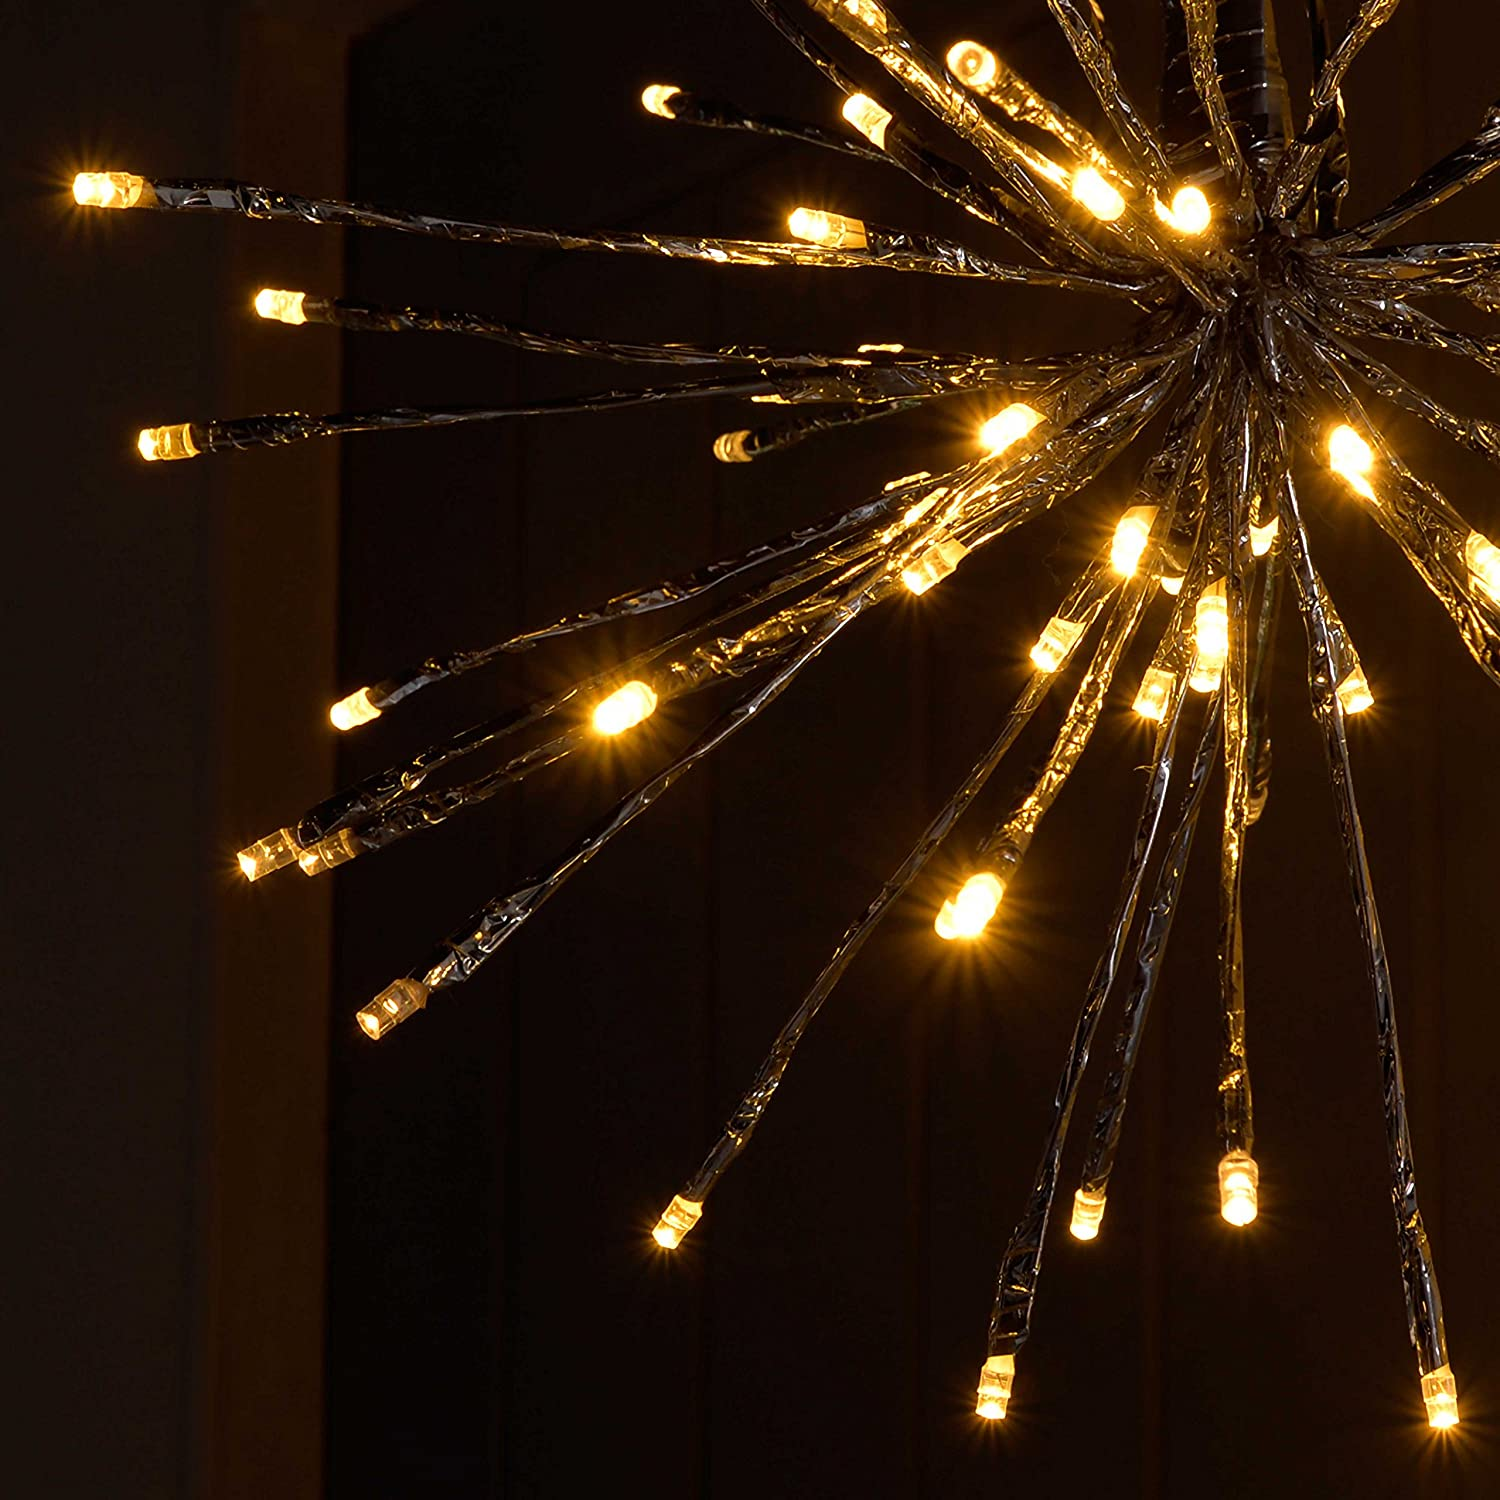 40 cm Warm White WeRChristmas Pre-Lit Flashing Silver 3D Star Ball Light with 80-LED